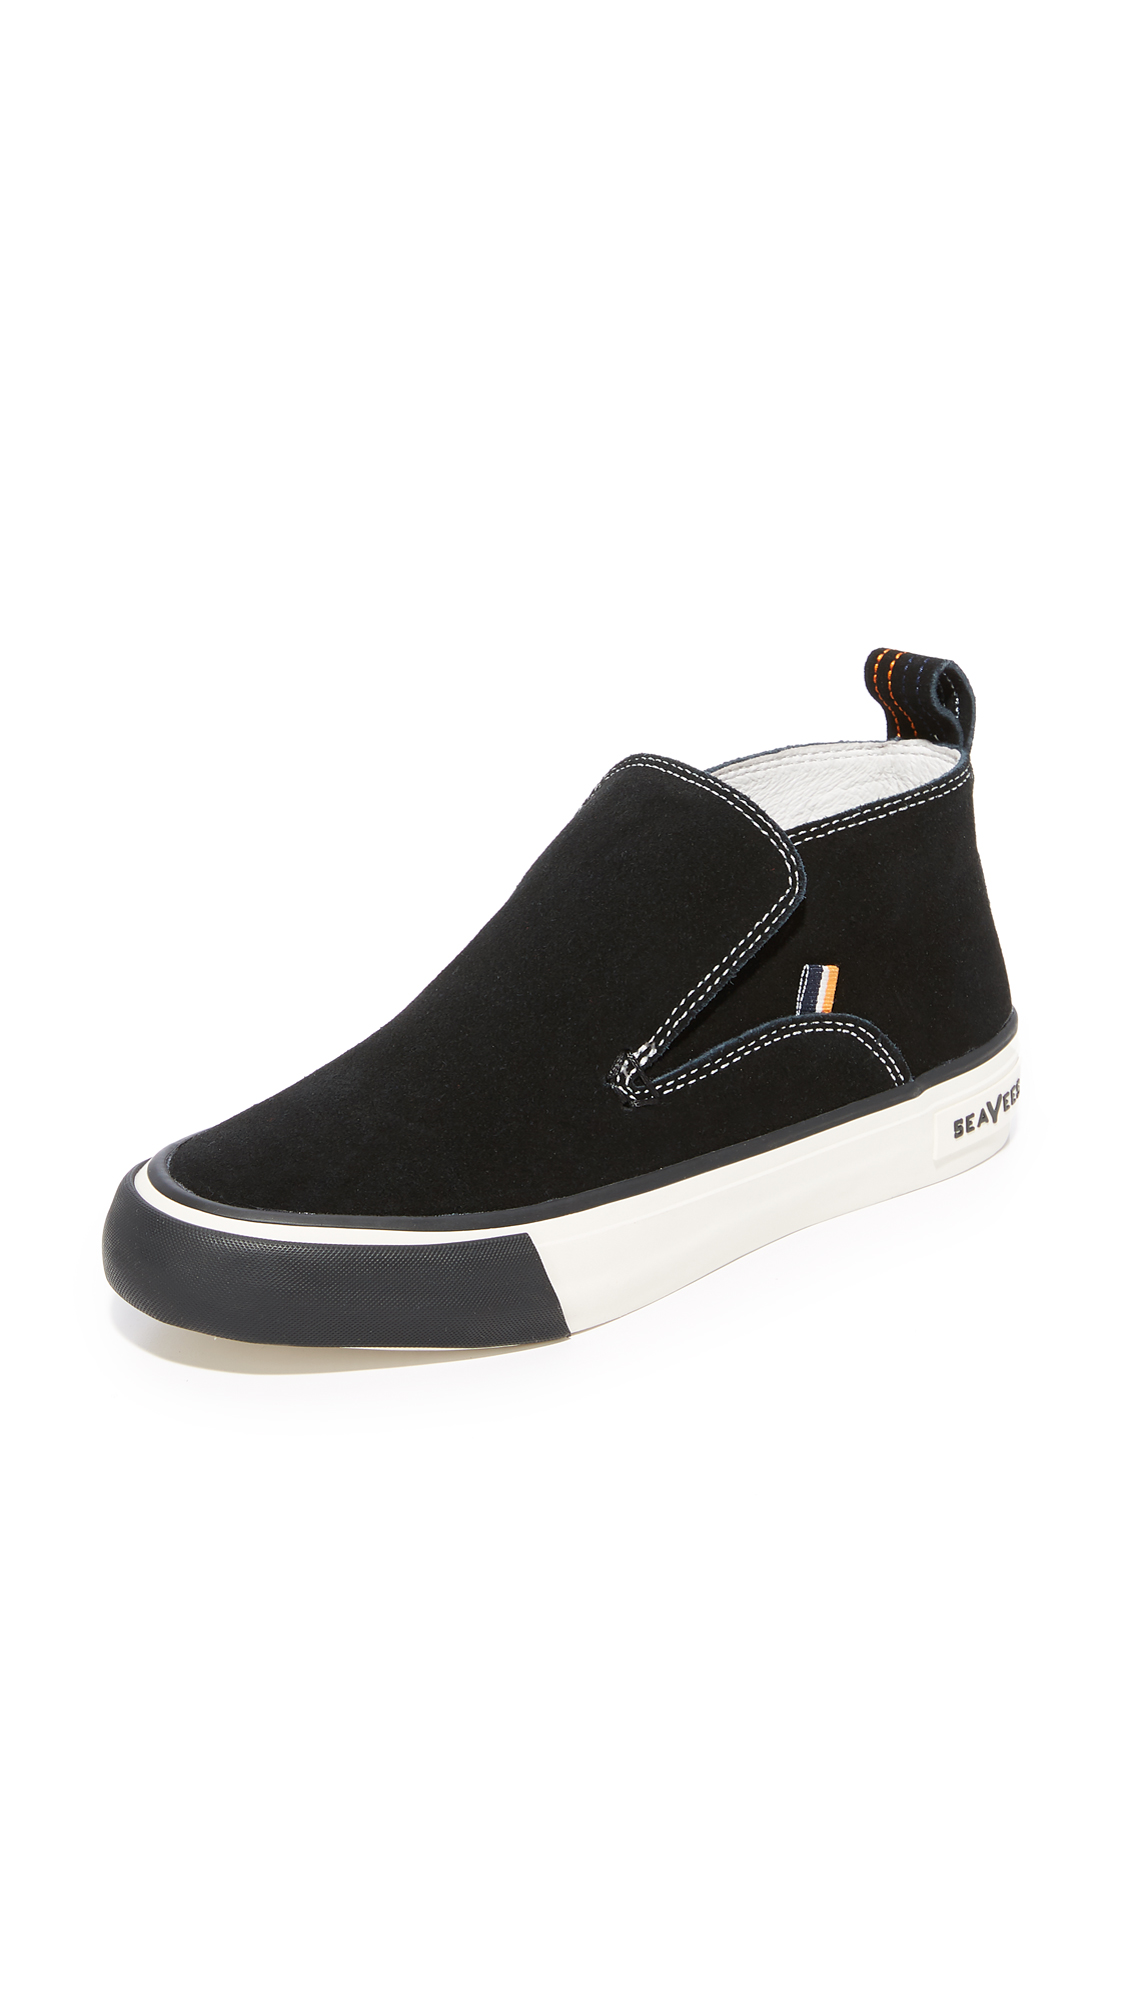 SeaVees x Derek Lam 10 Crosby Huntington Middie Sneakers - Black